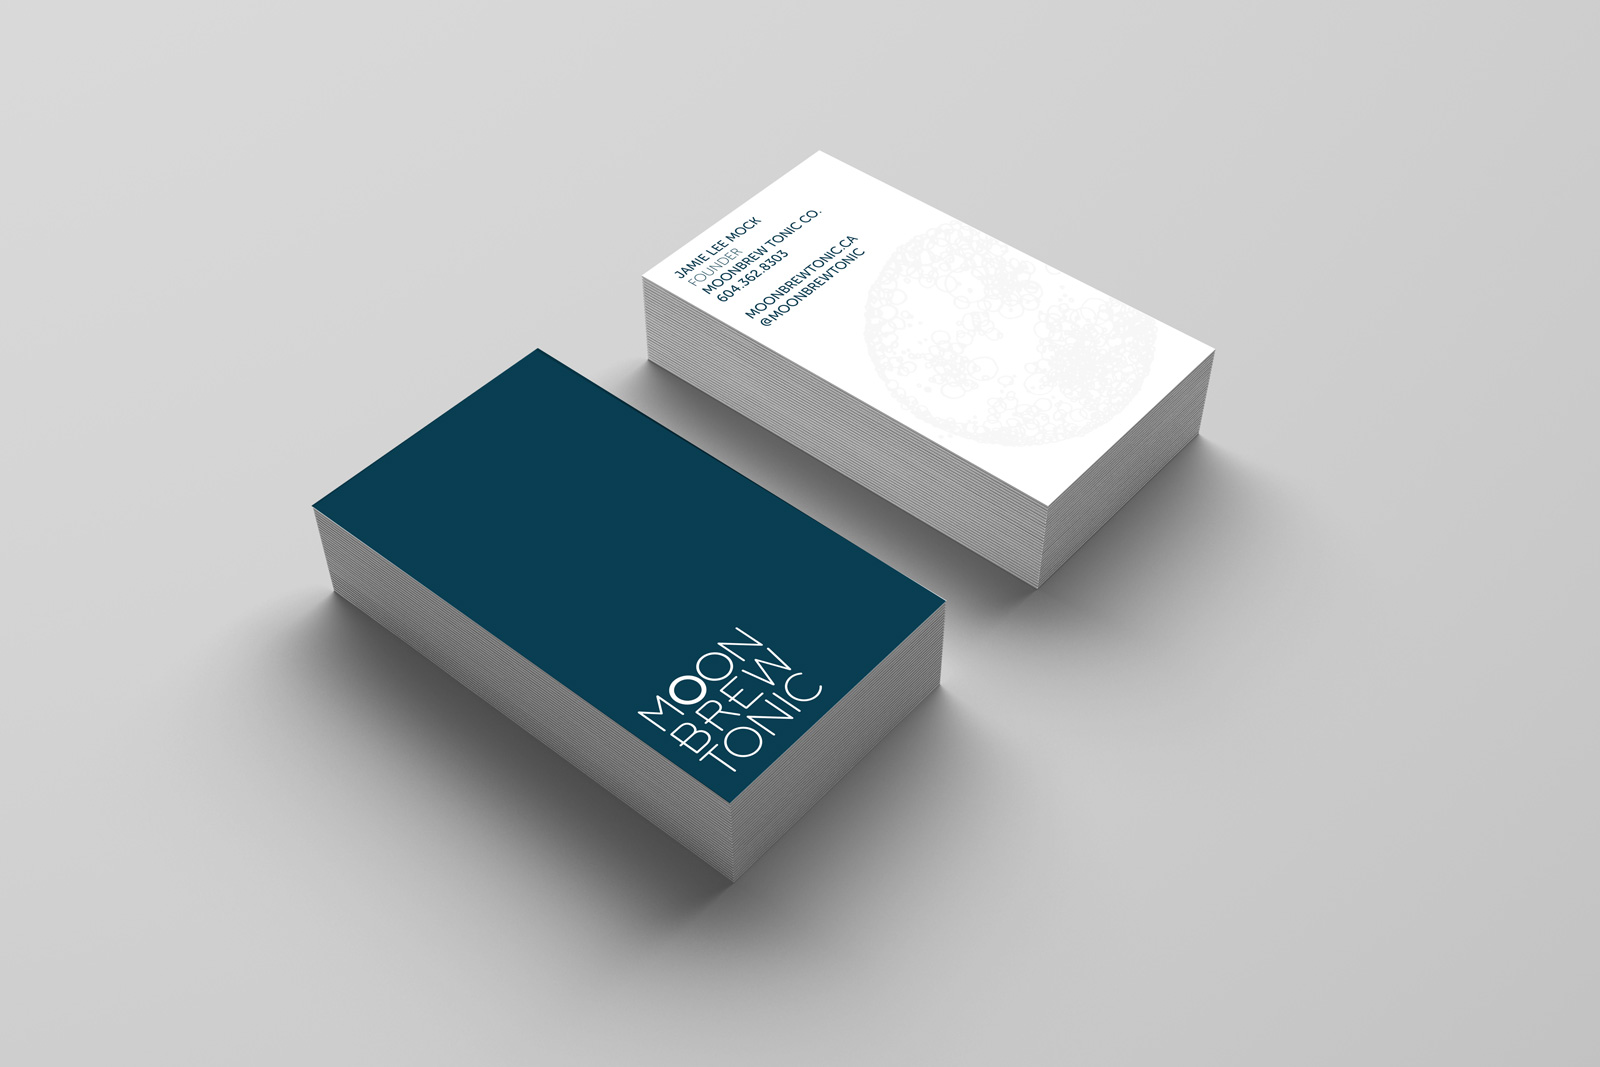 moonbrew_businesscard_mockup